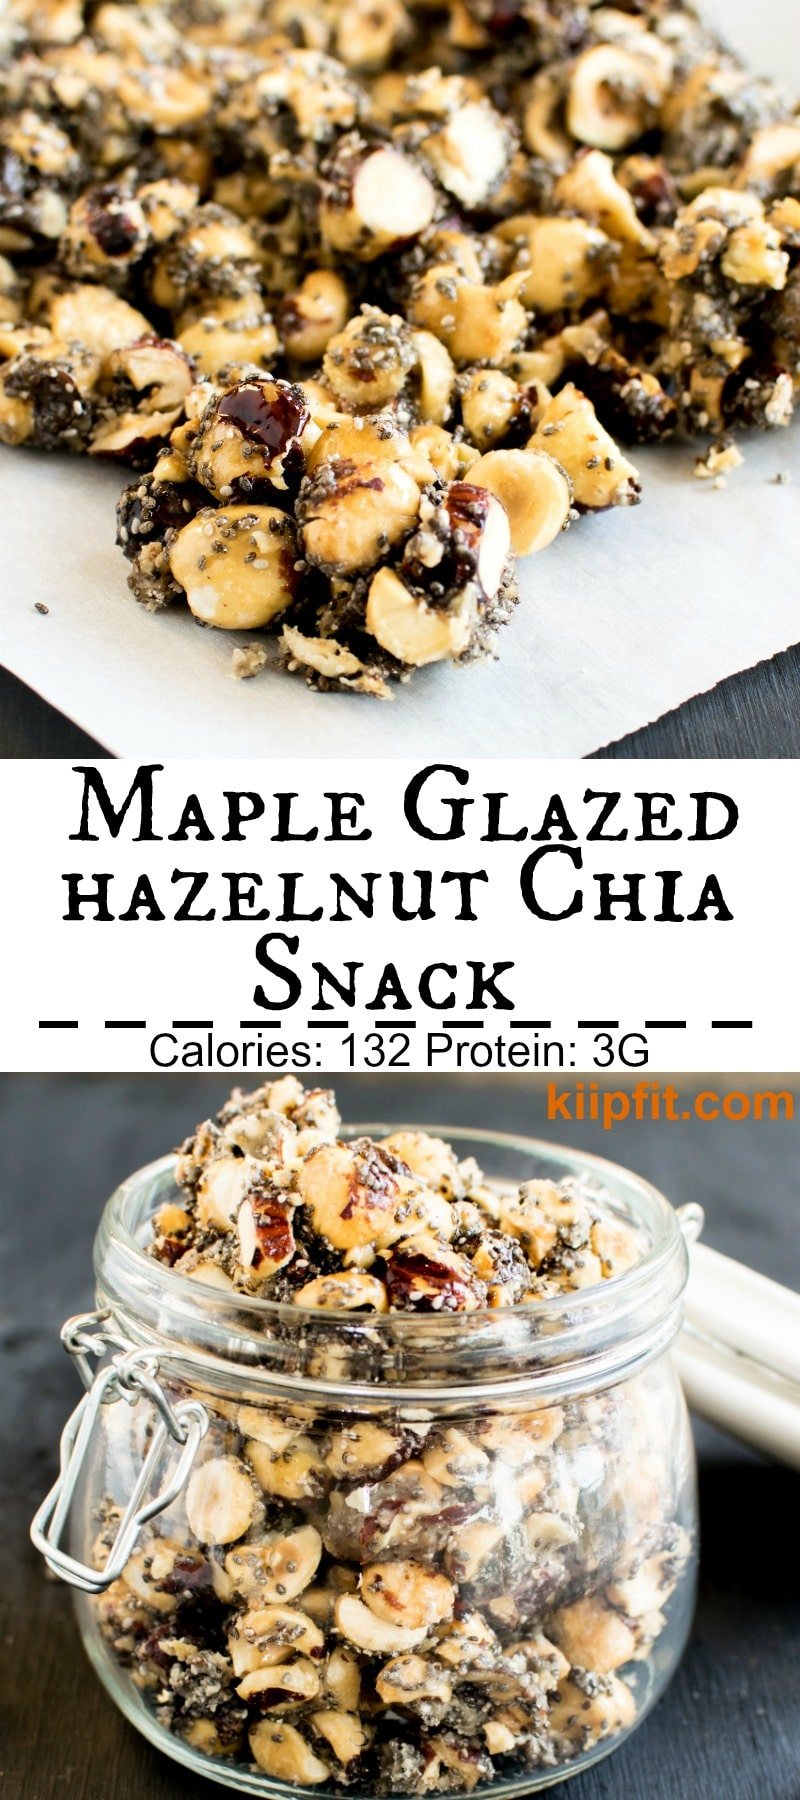 Maple Glazed Hazelnut Chia Snack is truly exquisite and an awesome crowd pleaser. It's a great back to school snack or delicious crunch to just munch on it in those odd hours of the day. I bet you can't stop eating it all until the jar is empty. My family went crazy for this snack and finished the entire jar in a whoooshhh [ vegan + GF + paleo ] kiipfit.com